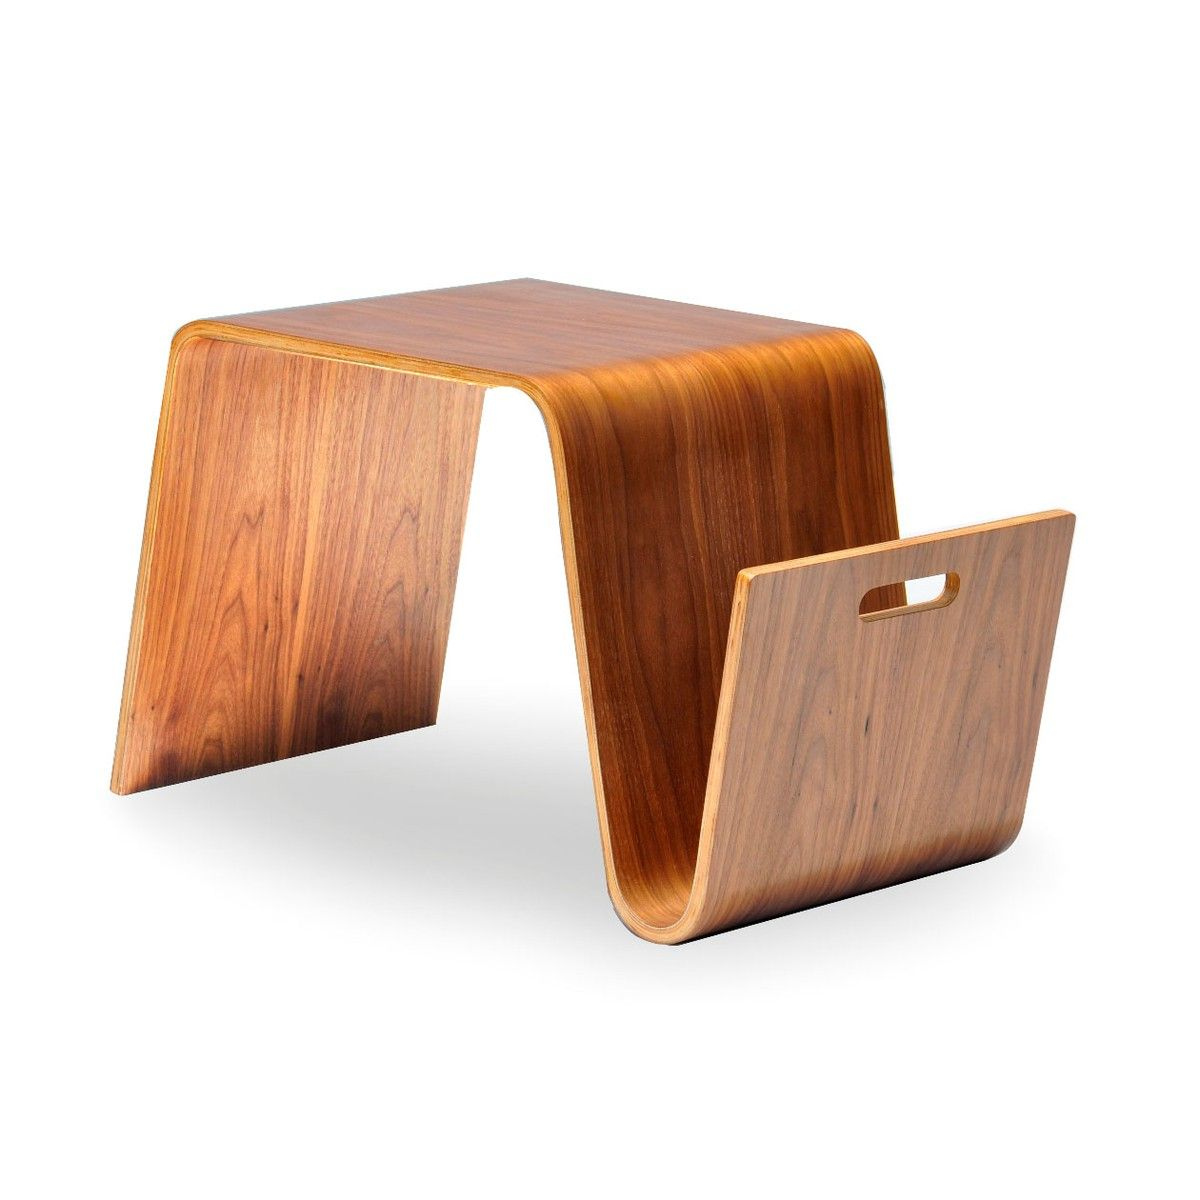 This Multi Functional Magazine Table Serves As A Table Or Stool